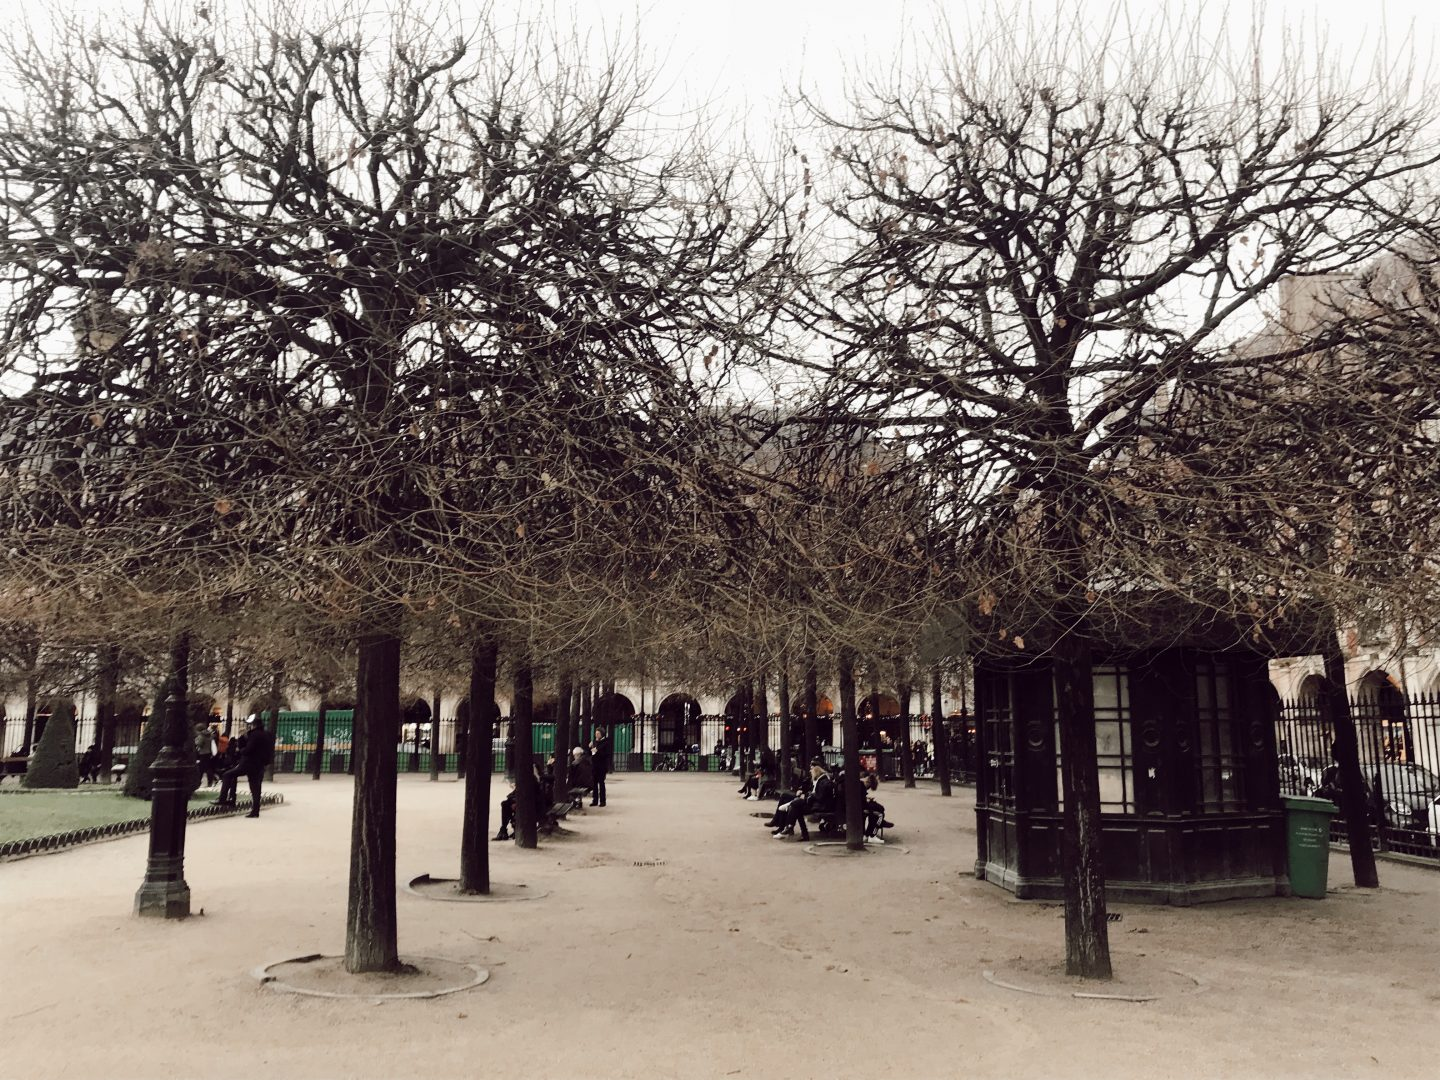 Paris in pictures - ByMeryl